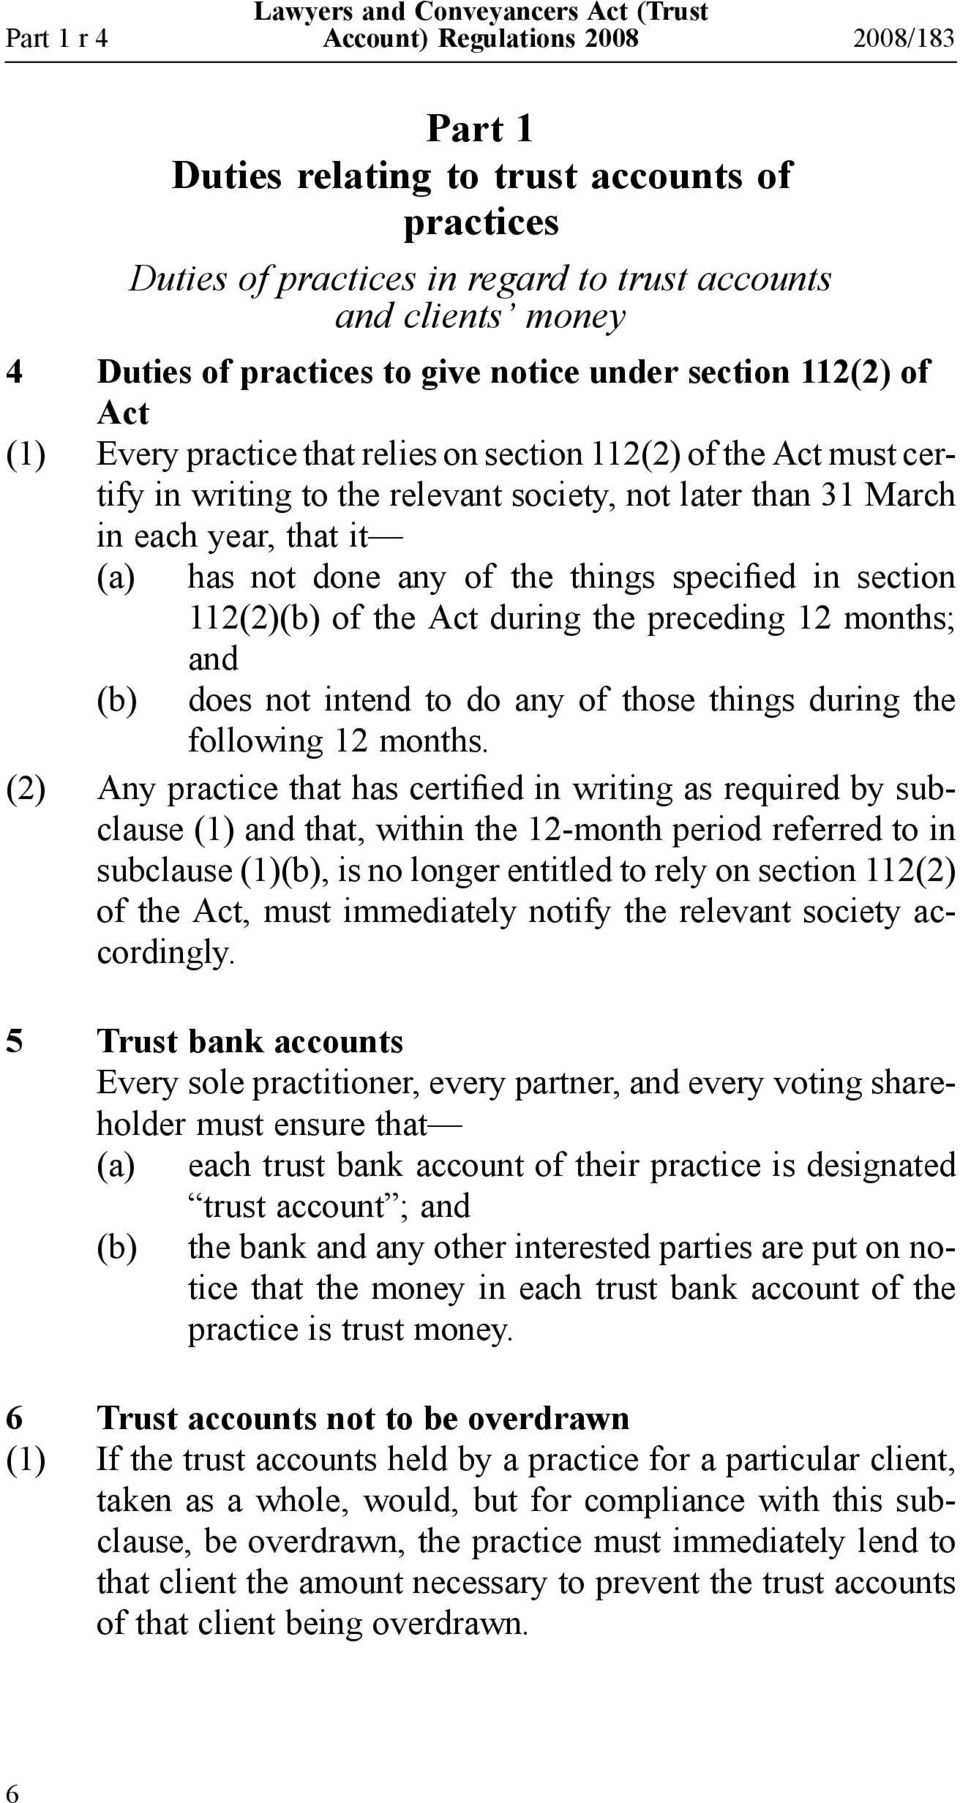 not done any of the things specified in section 112(2)(b) of the Act during the preceding 12 months; and (b) does not intend to do any of those things during the following 12 months.